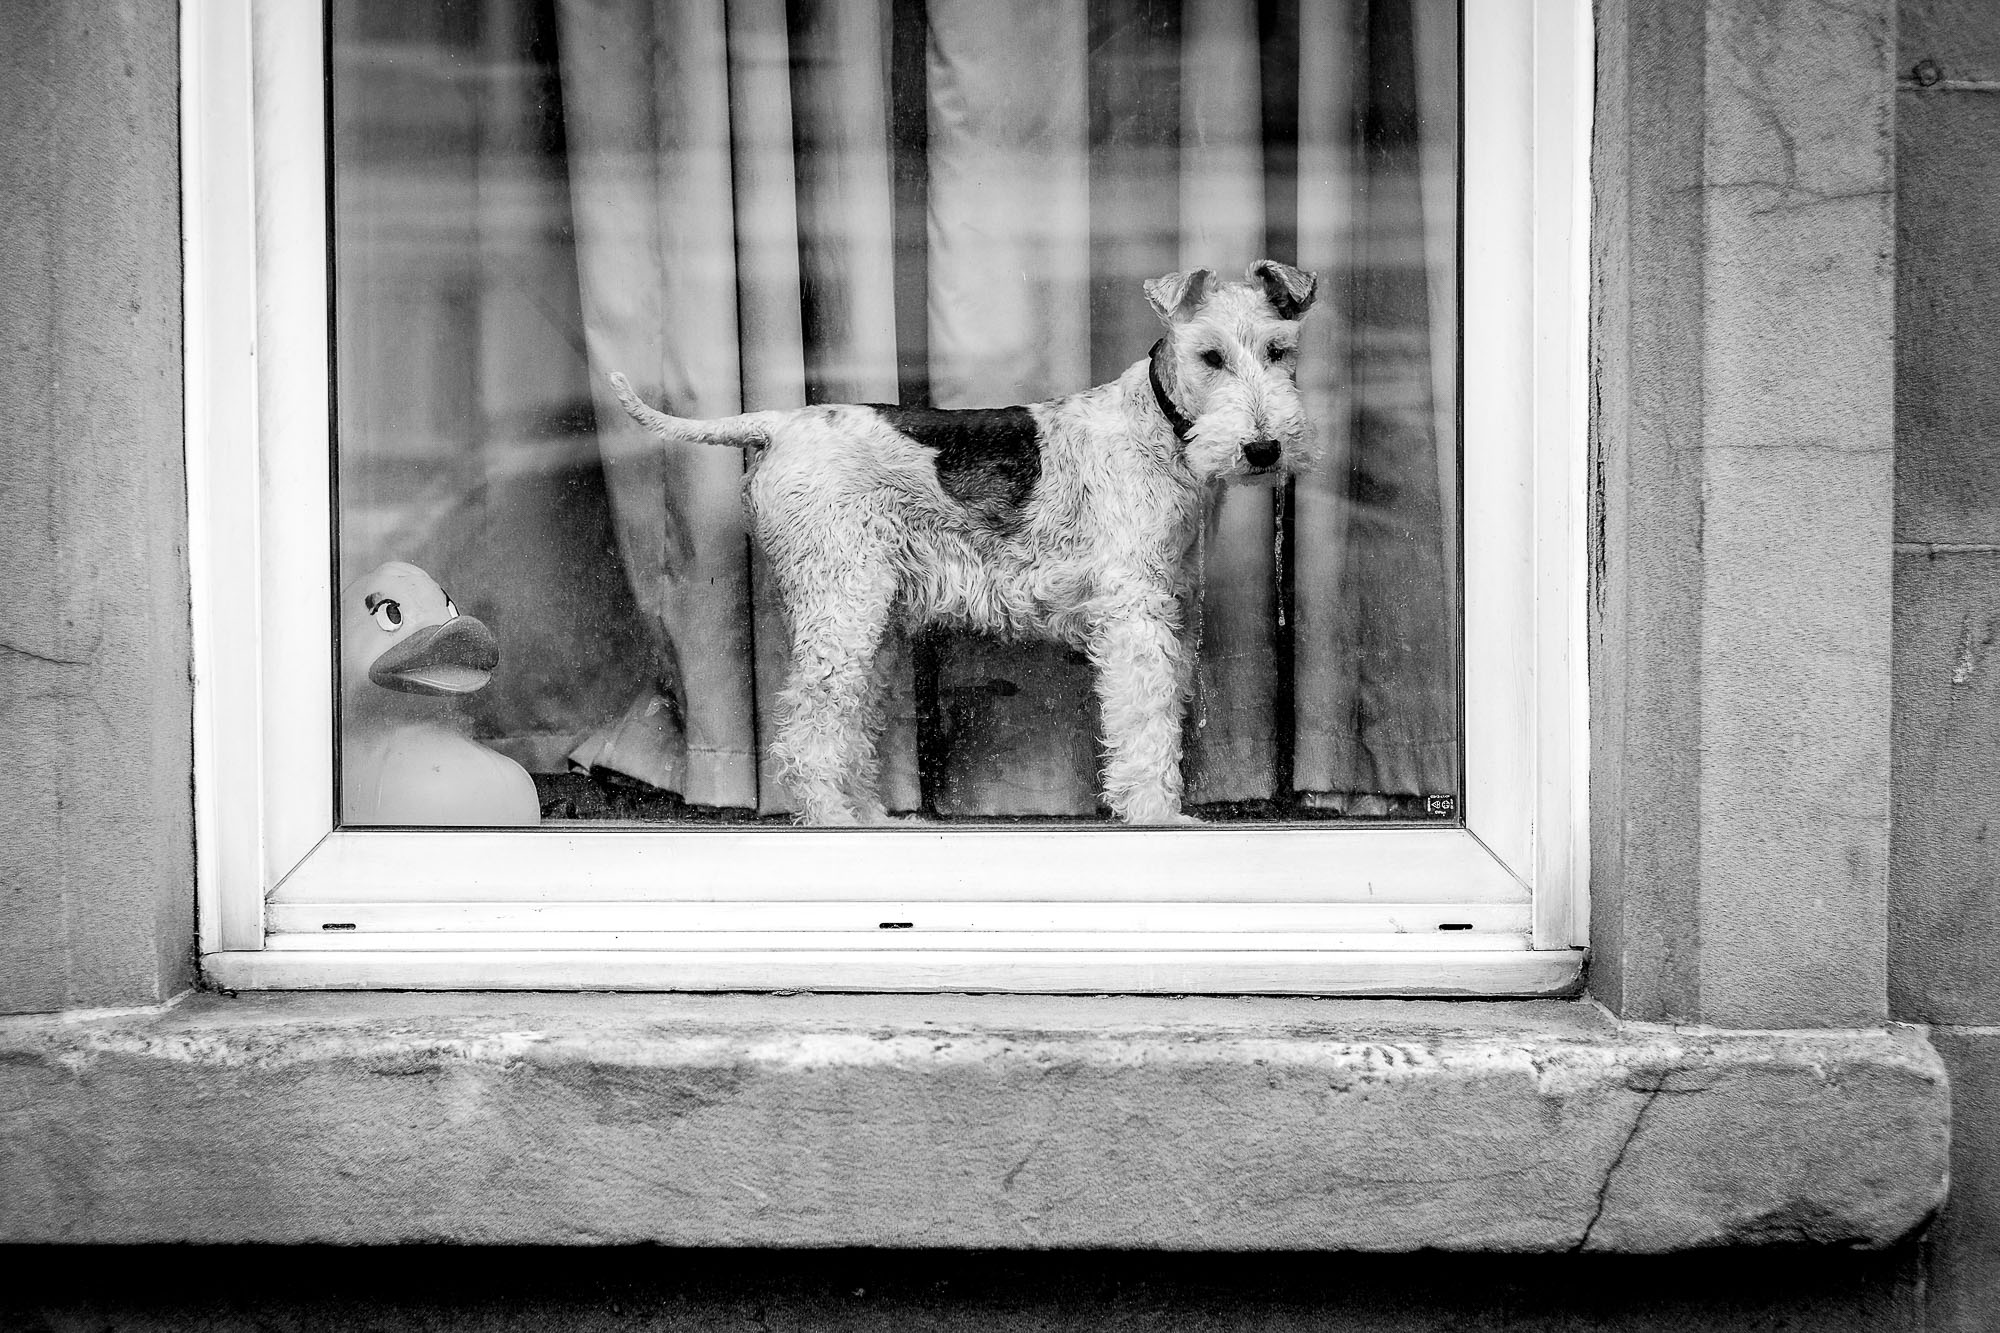 A plastic duck and a dog behind a window